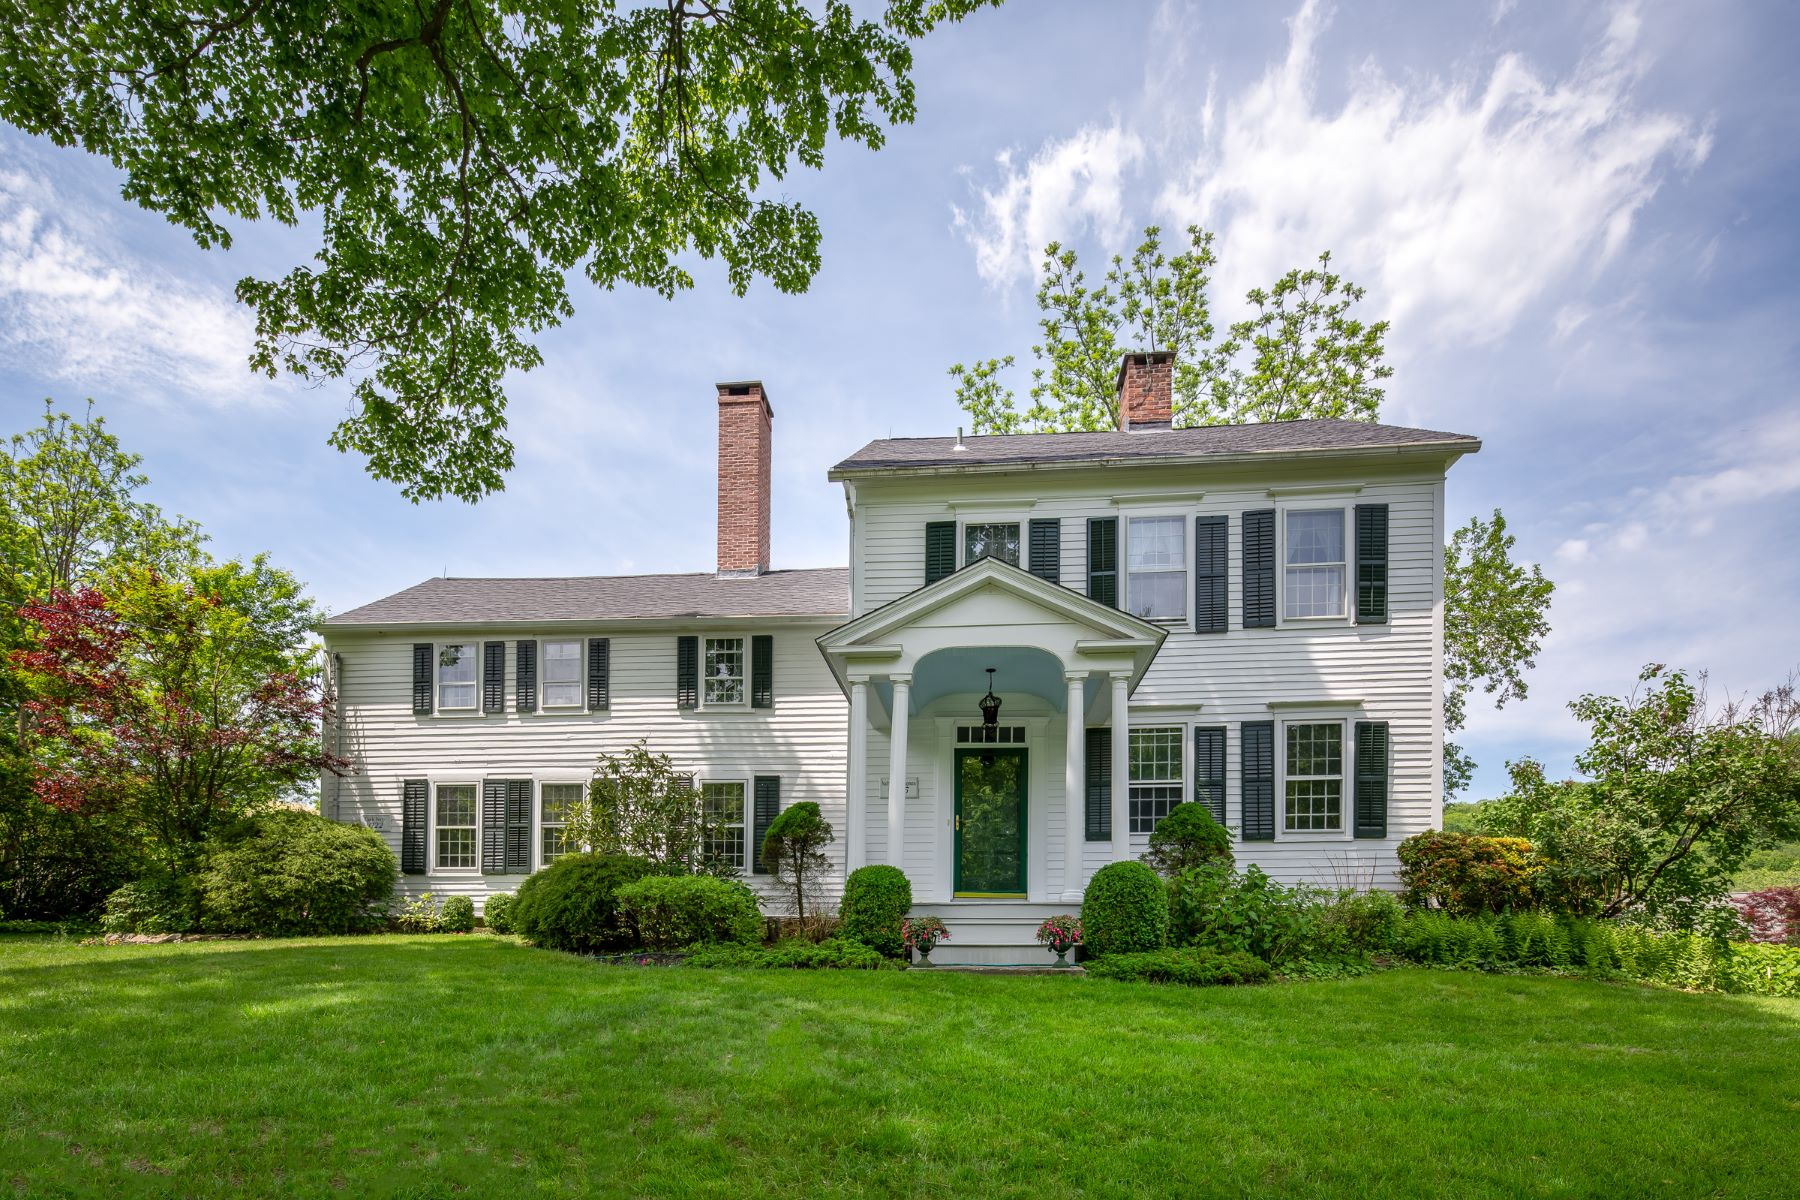 Casa Unifamiliar por un Venta en Centuried Country Colonial 511 Quaker Farms Road Oxford, Connecticut 06478 Estados Unidos